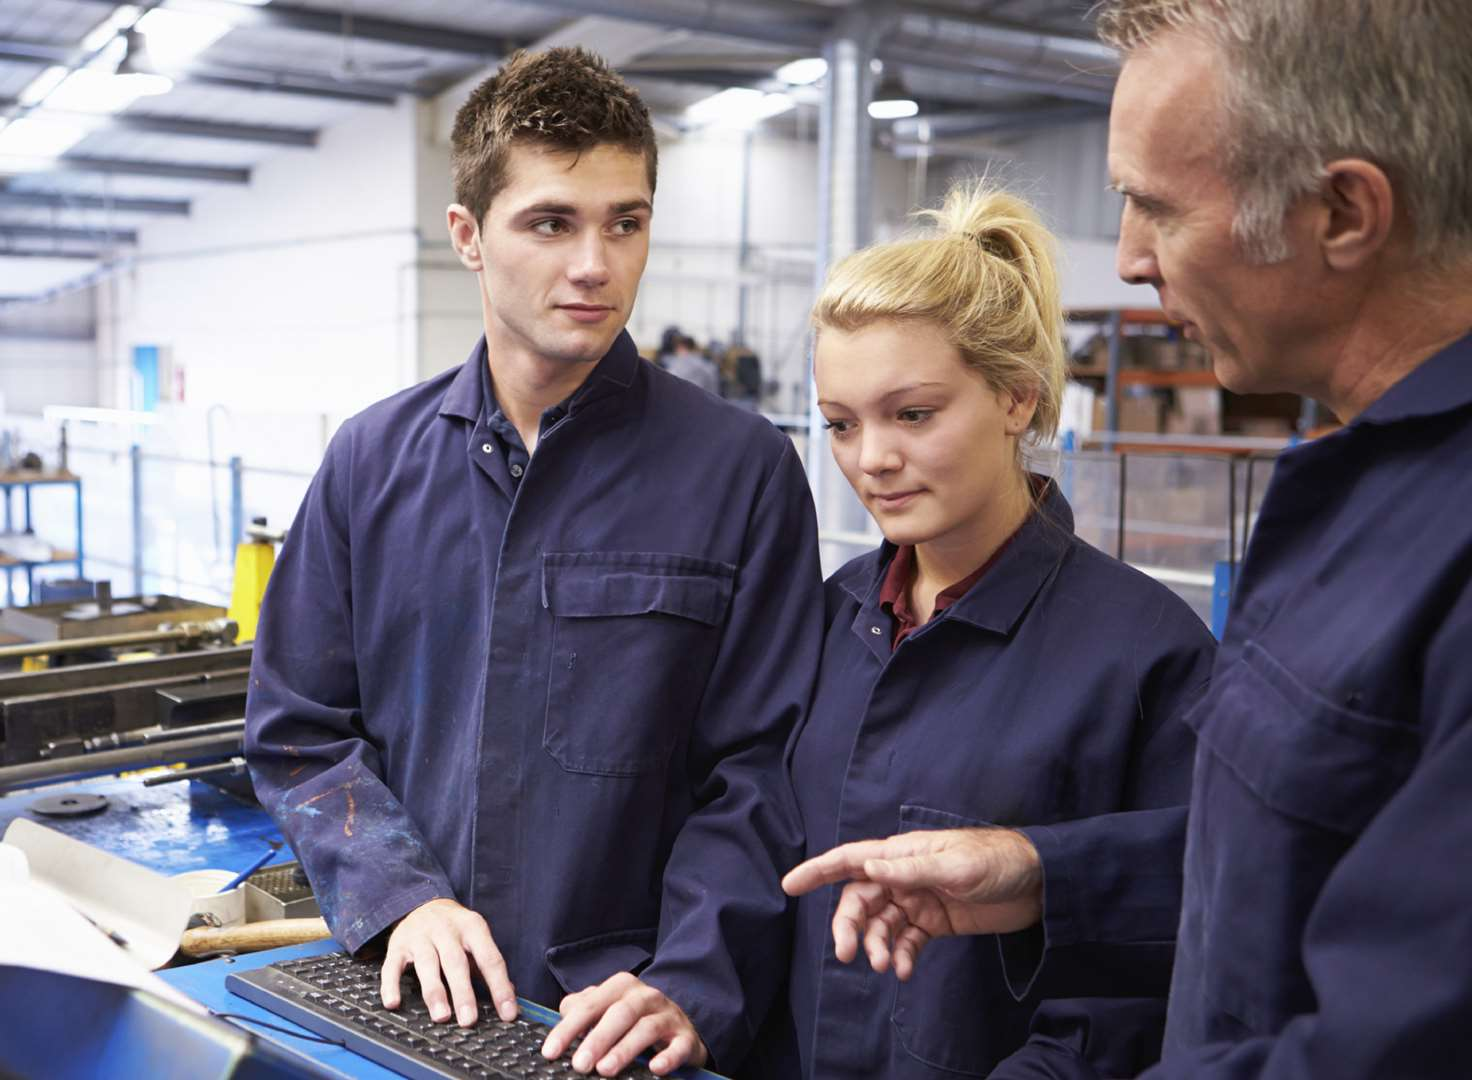 Many ways to improve apprenticeships